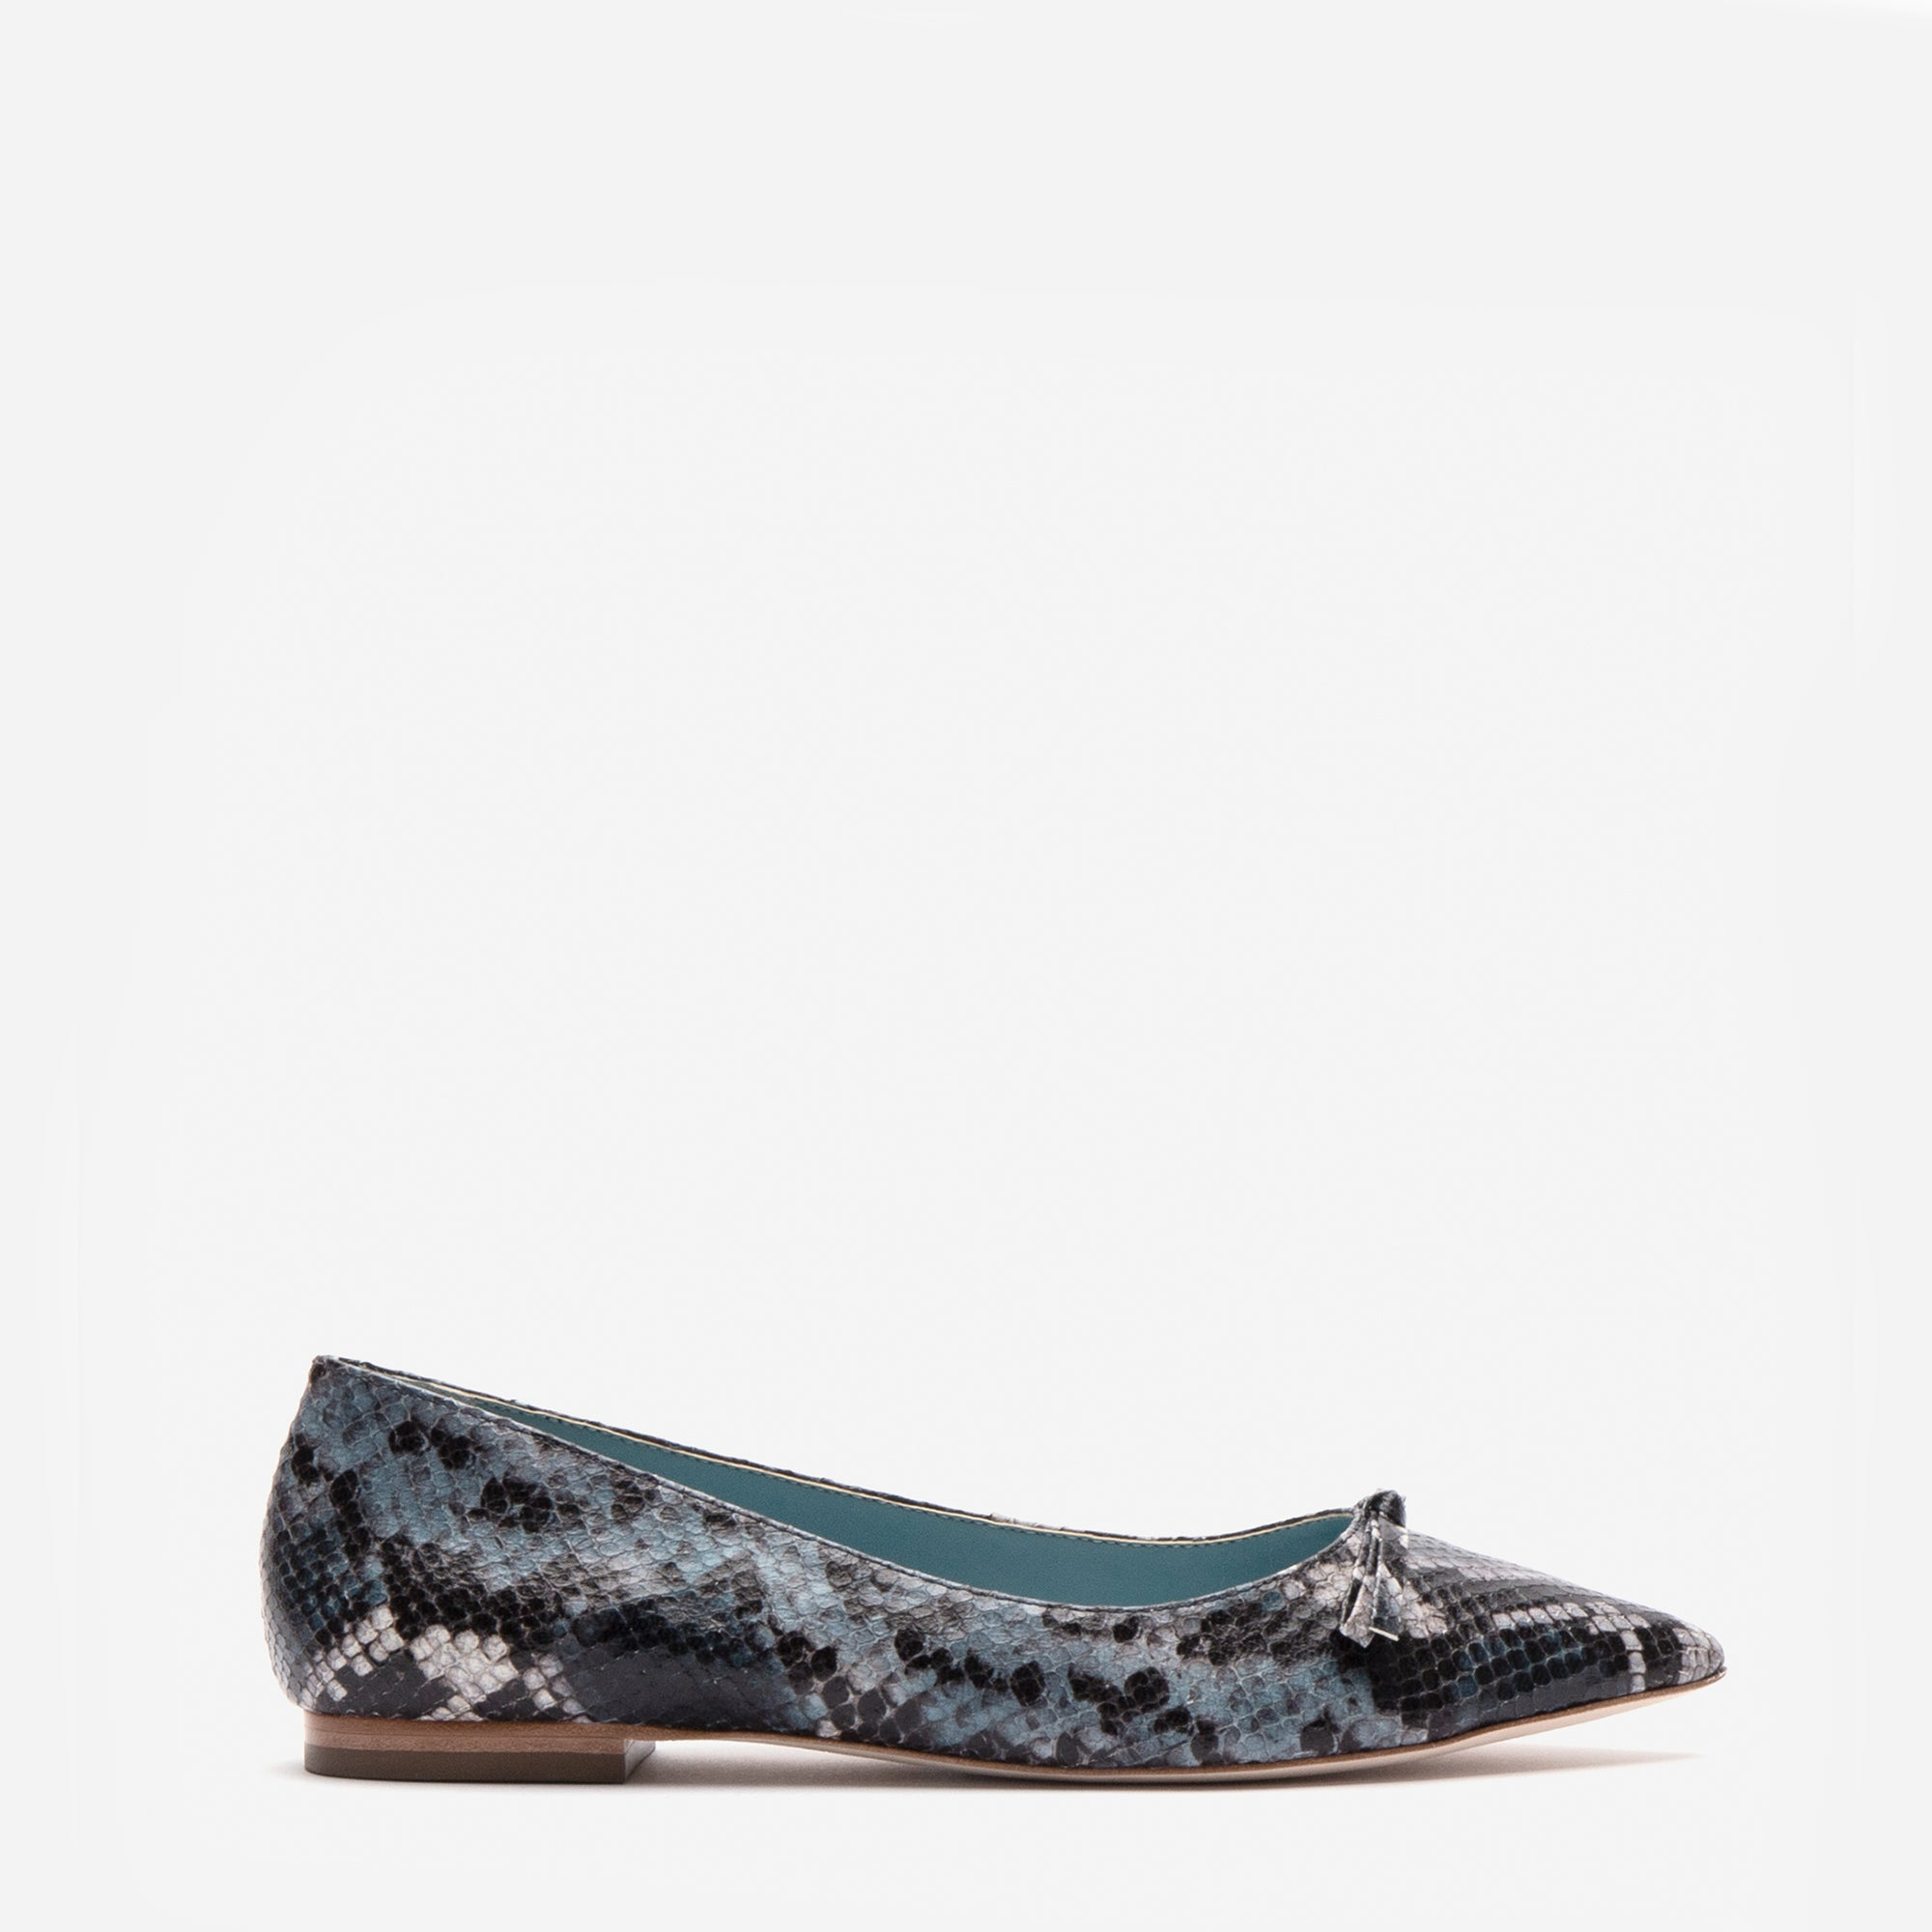 Paige Bow Flats Printed Snake Navy - Frances Valentine